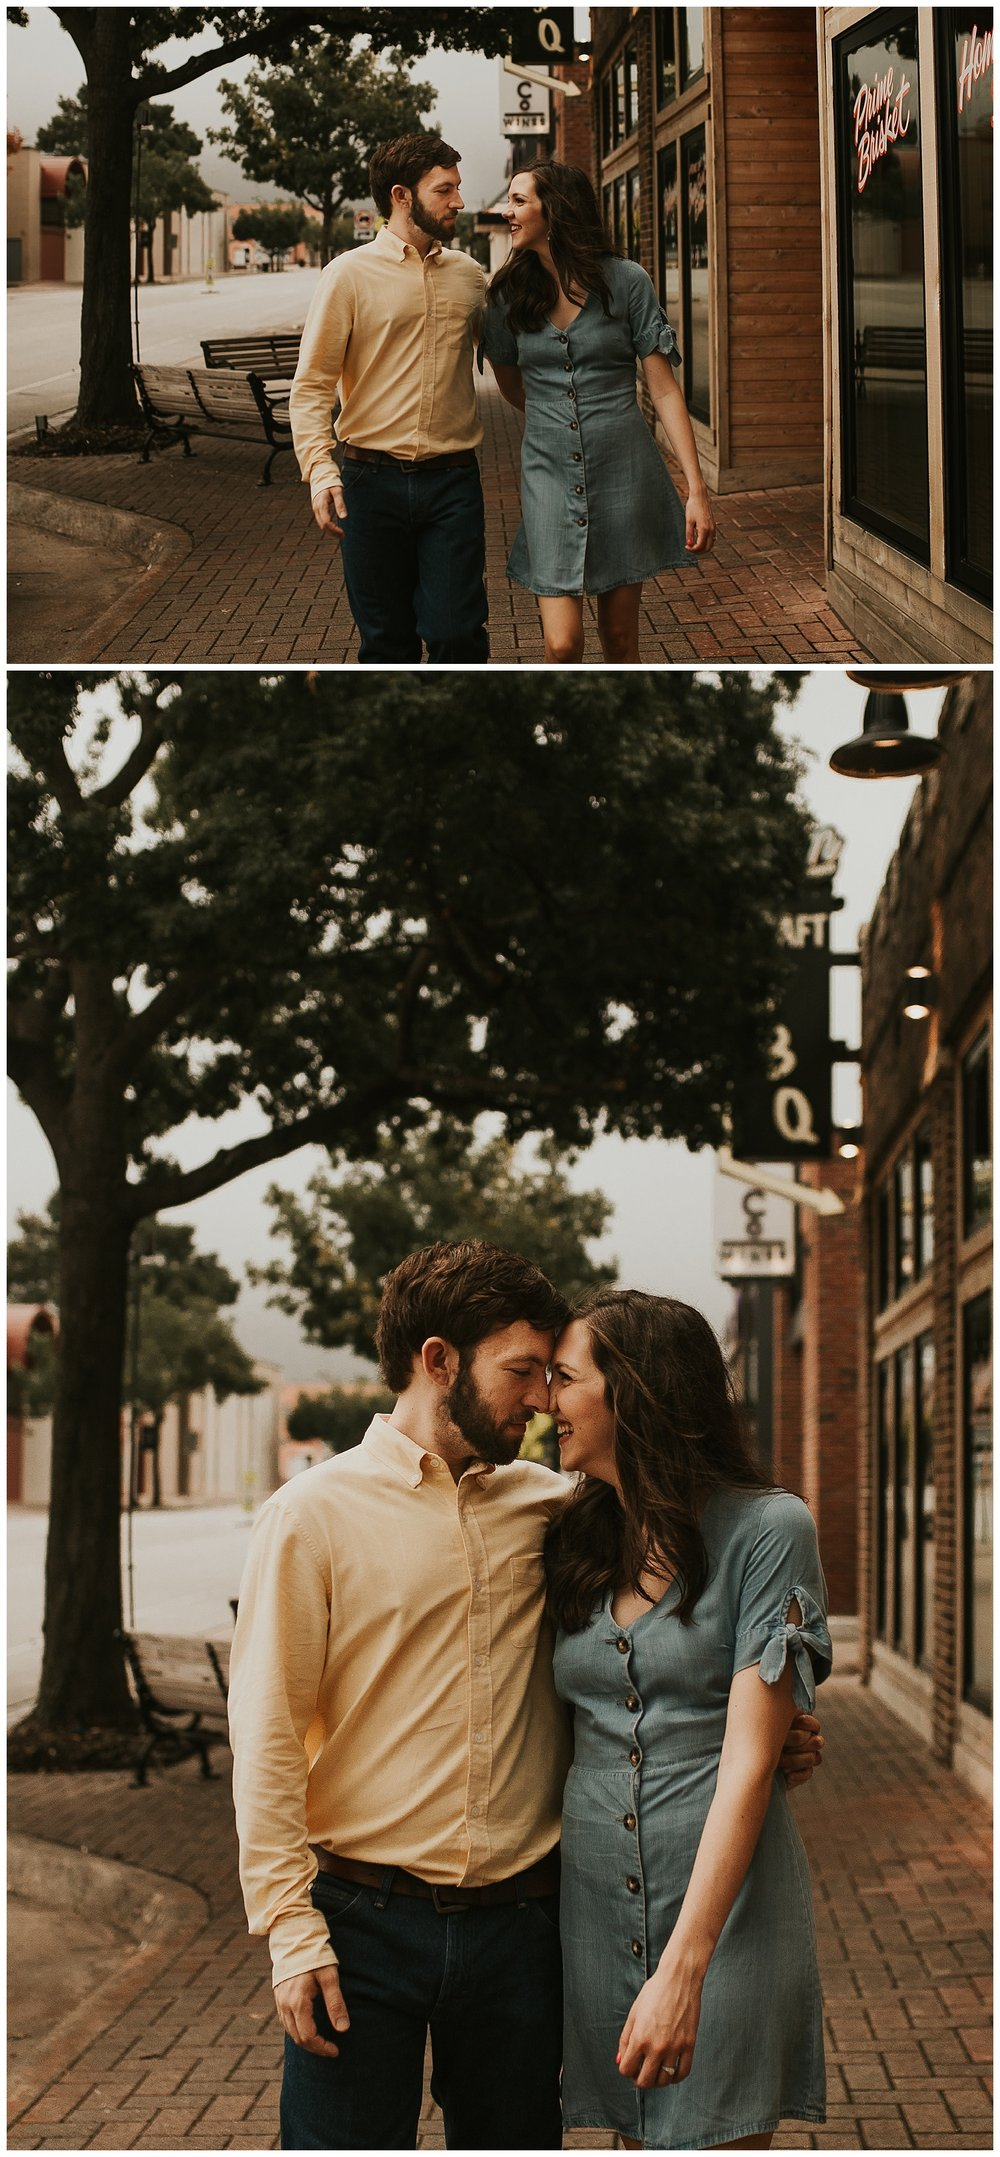 Laken-Mackenzie-Photography-Downtown-Fort-Worth-Engagement-Fort-Worth-Photographer15.jpg